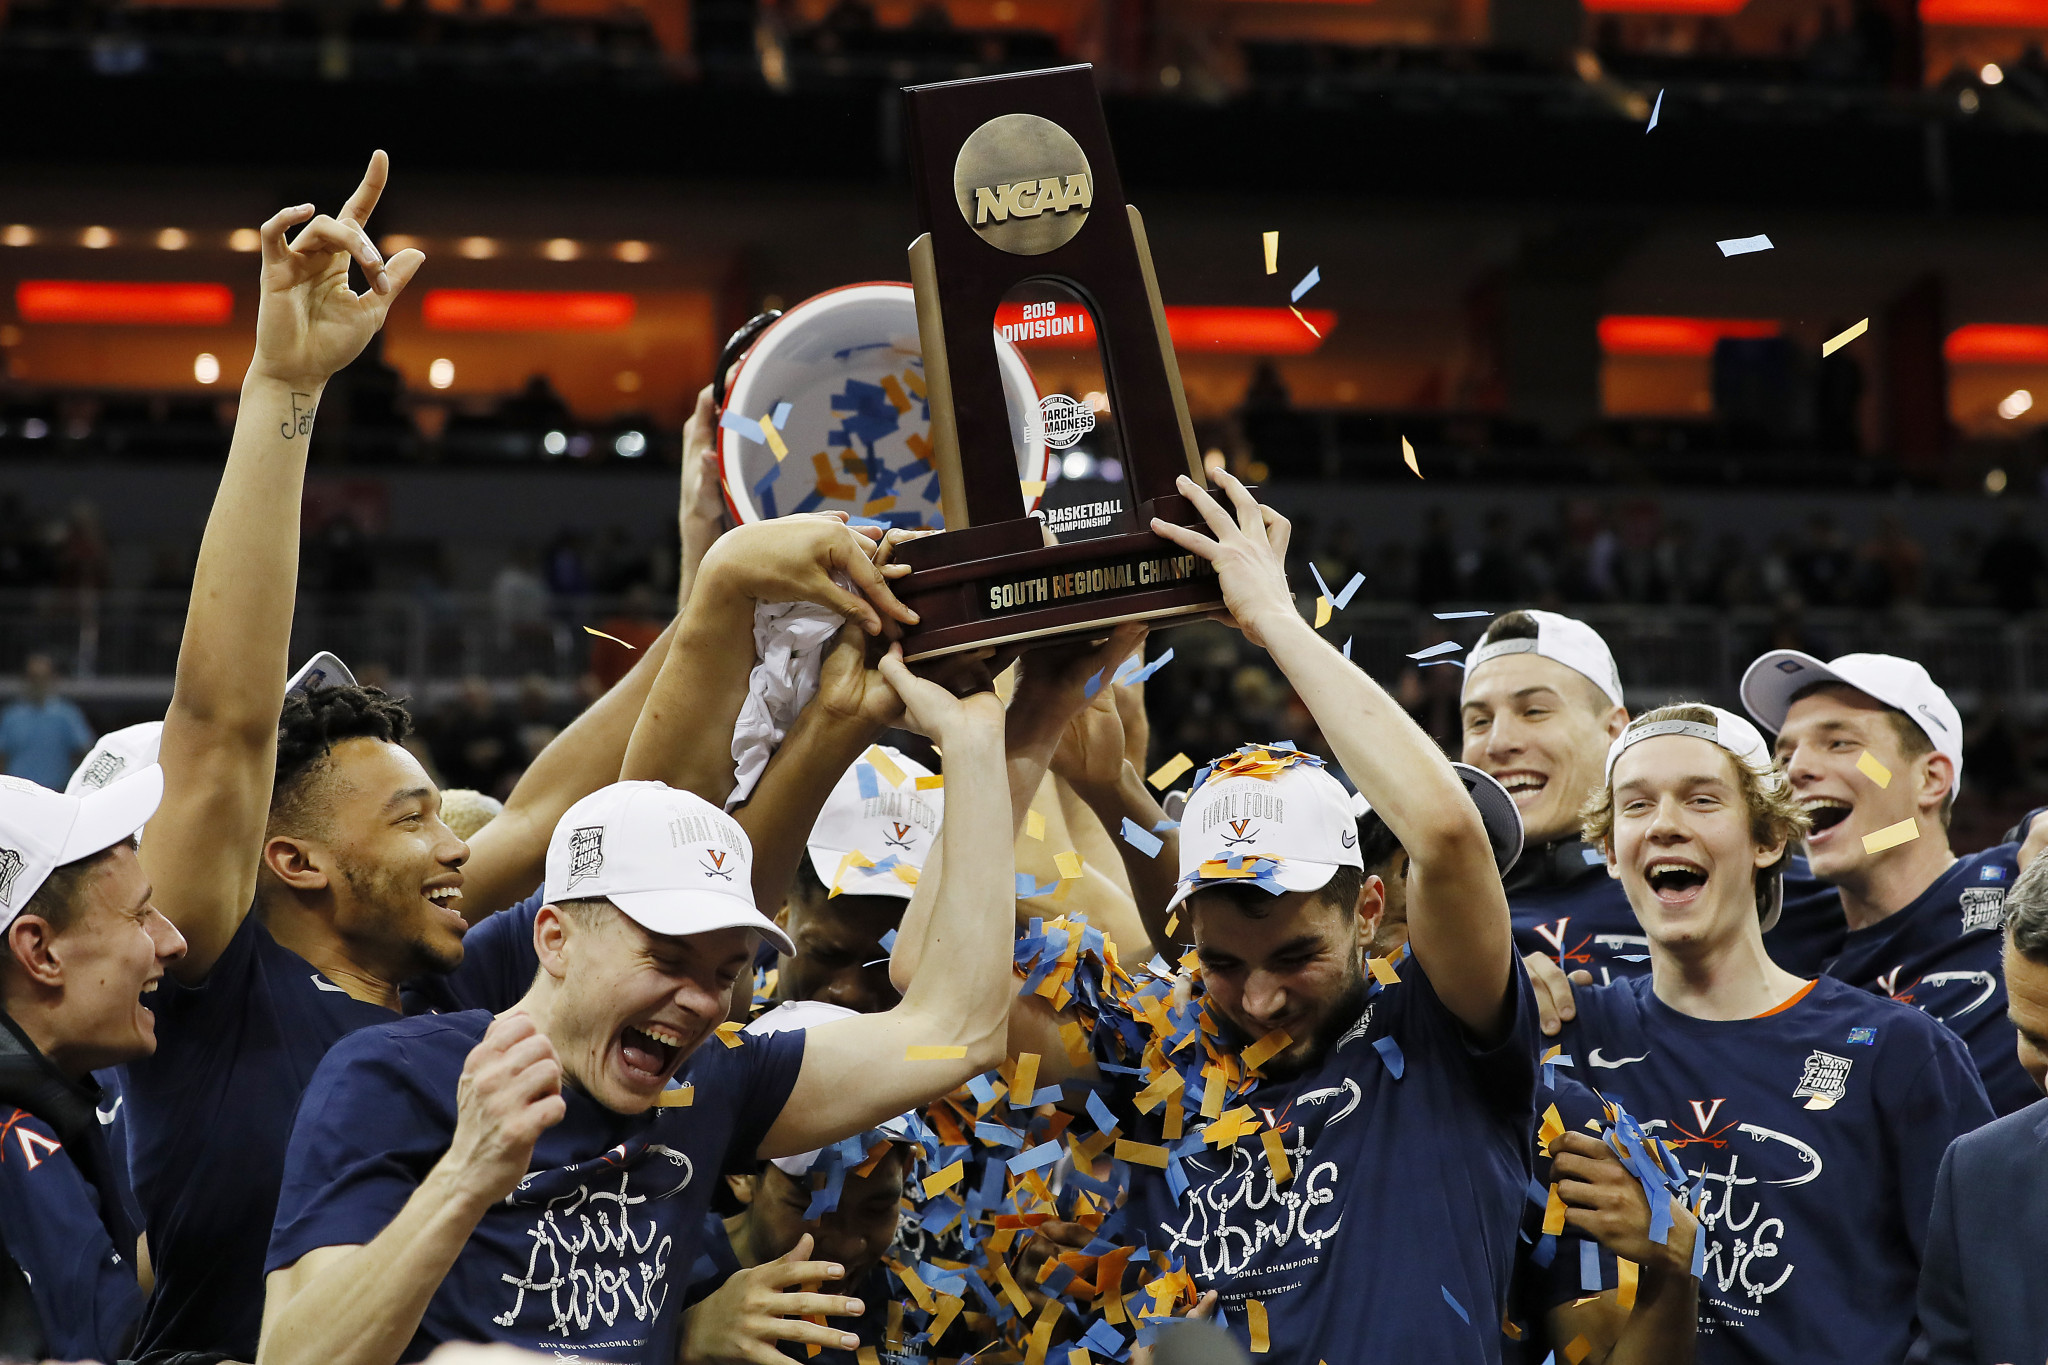 Defending champions Virginia face missing March Madness due to COVID-19 case